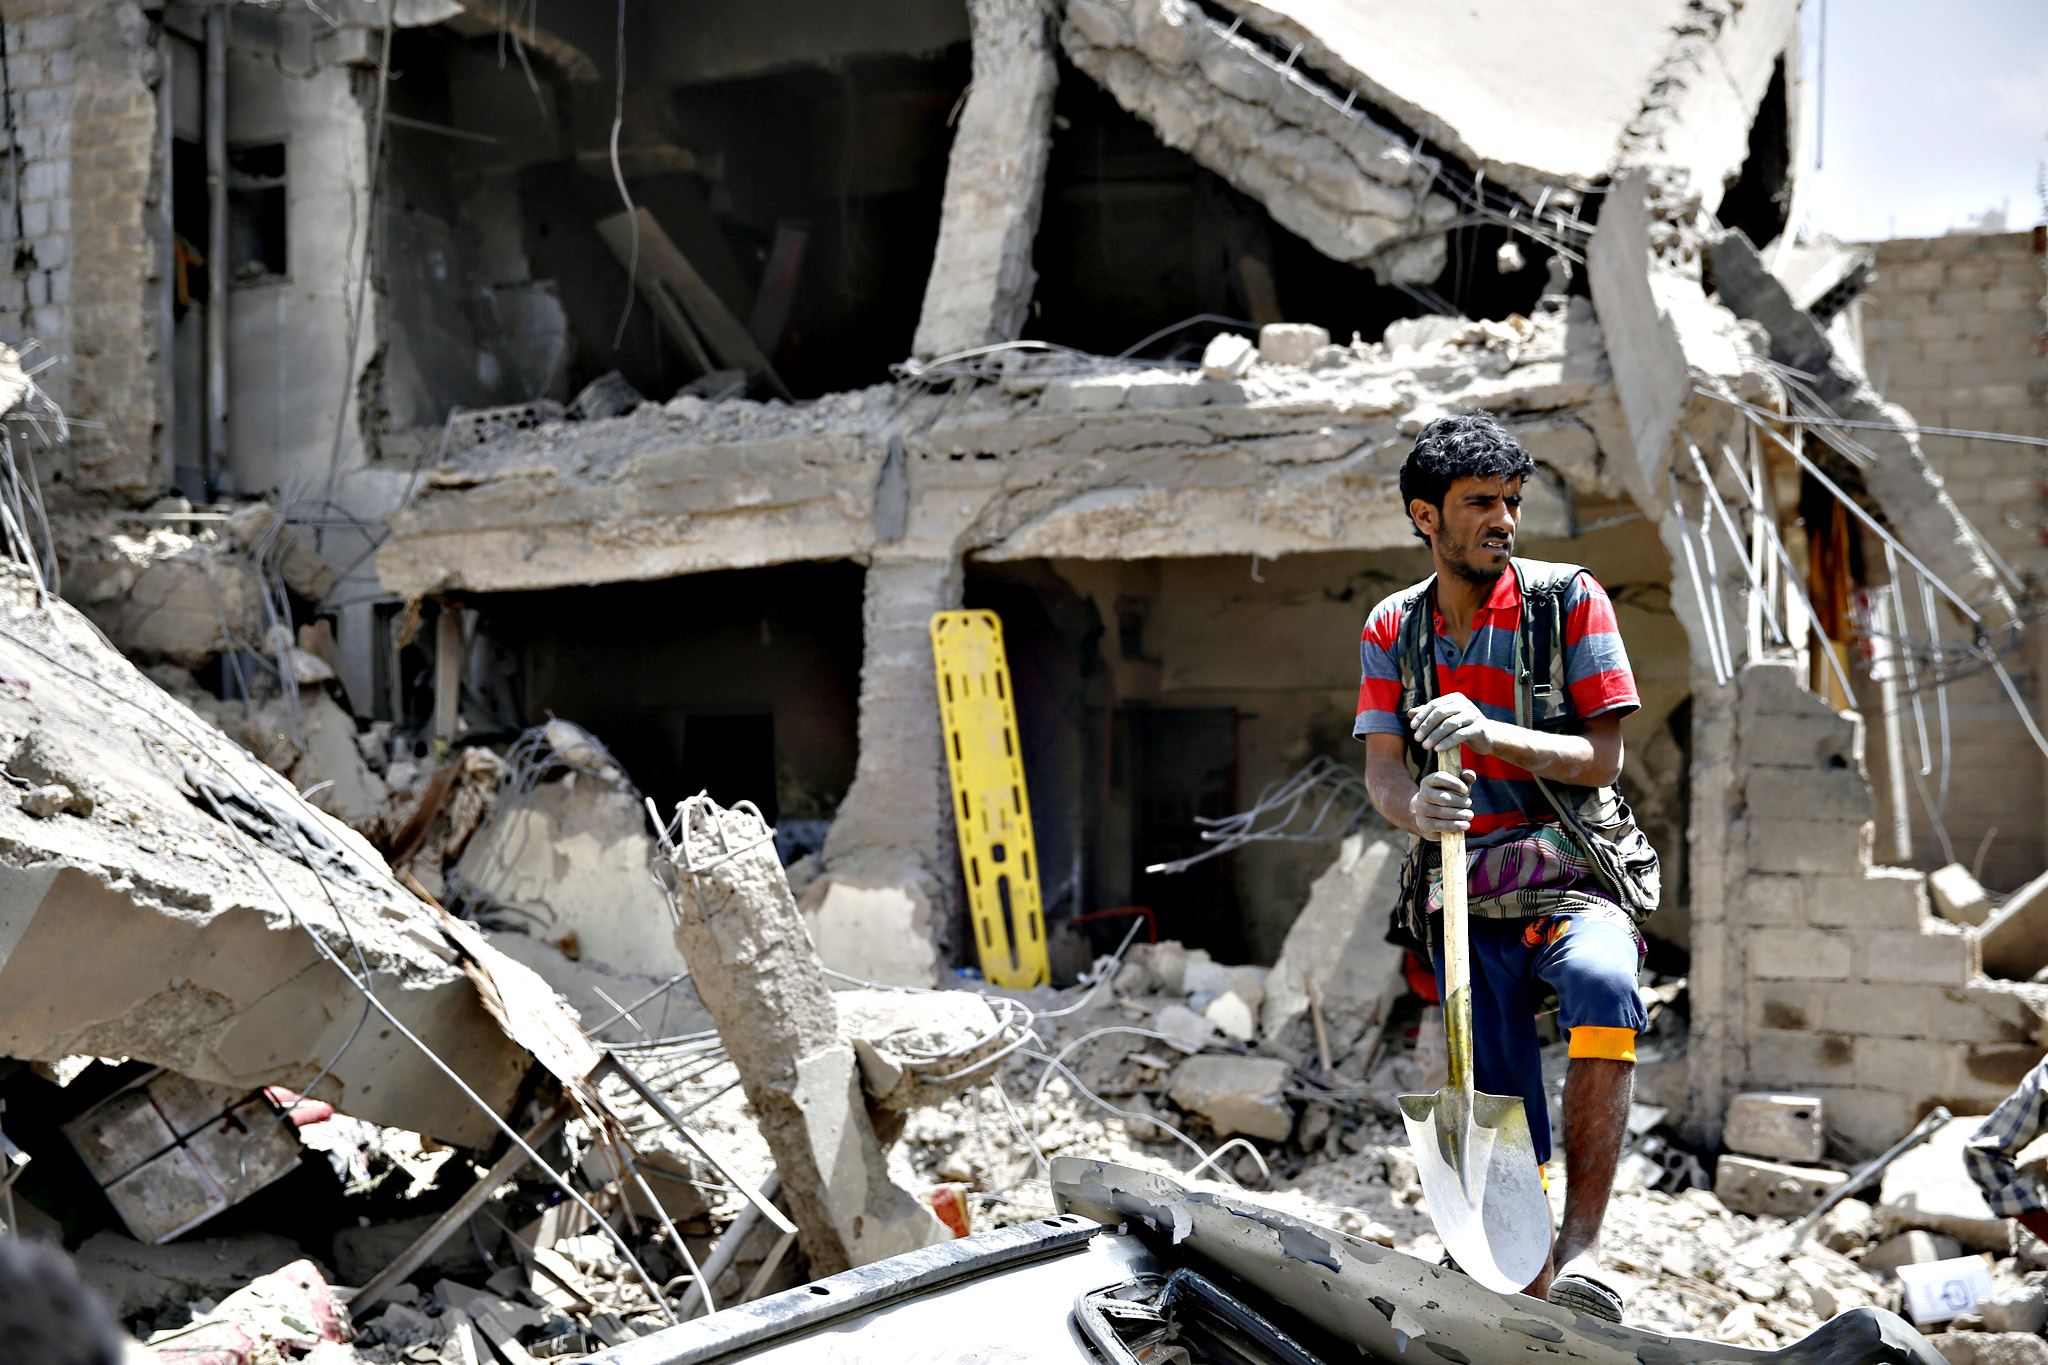 A man stands amid the rubble of houses destroyed in a Saudi-led airstrike in Sanaa, Yemen, Monday, Sept. 21, 2015.